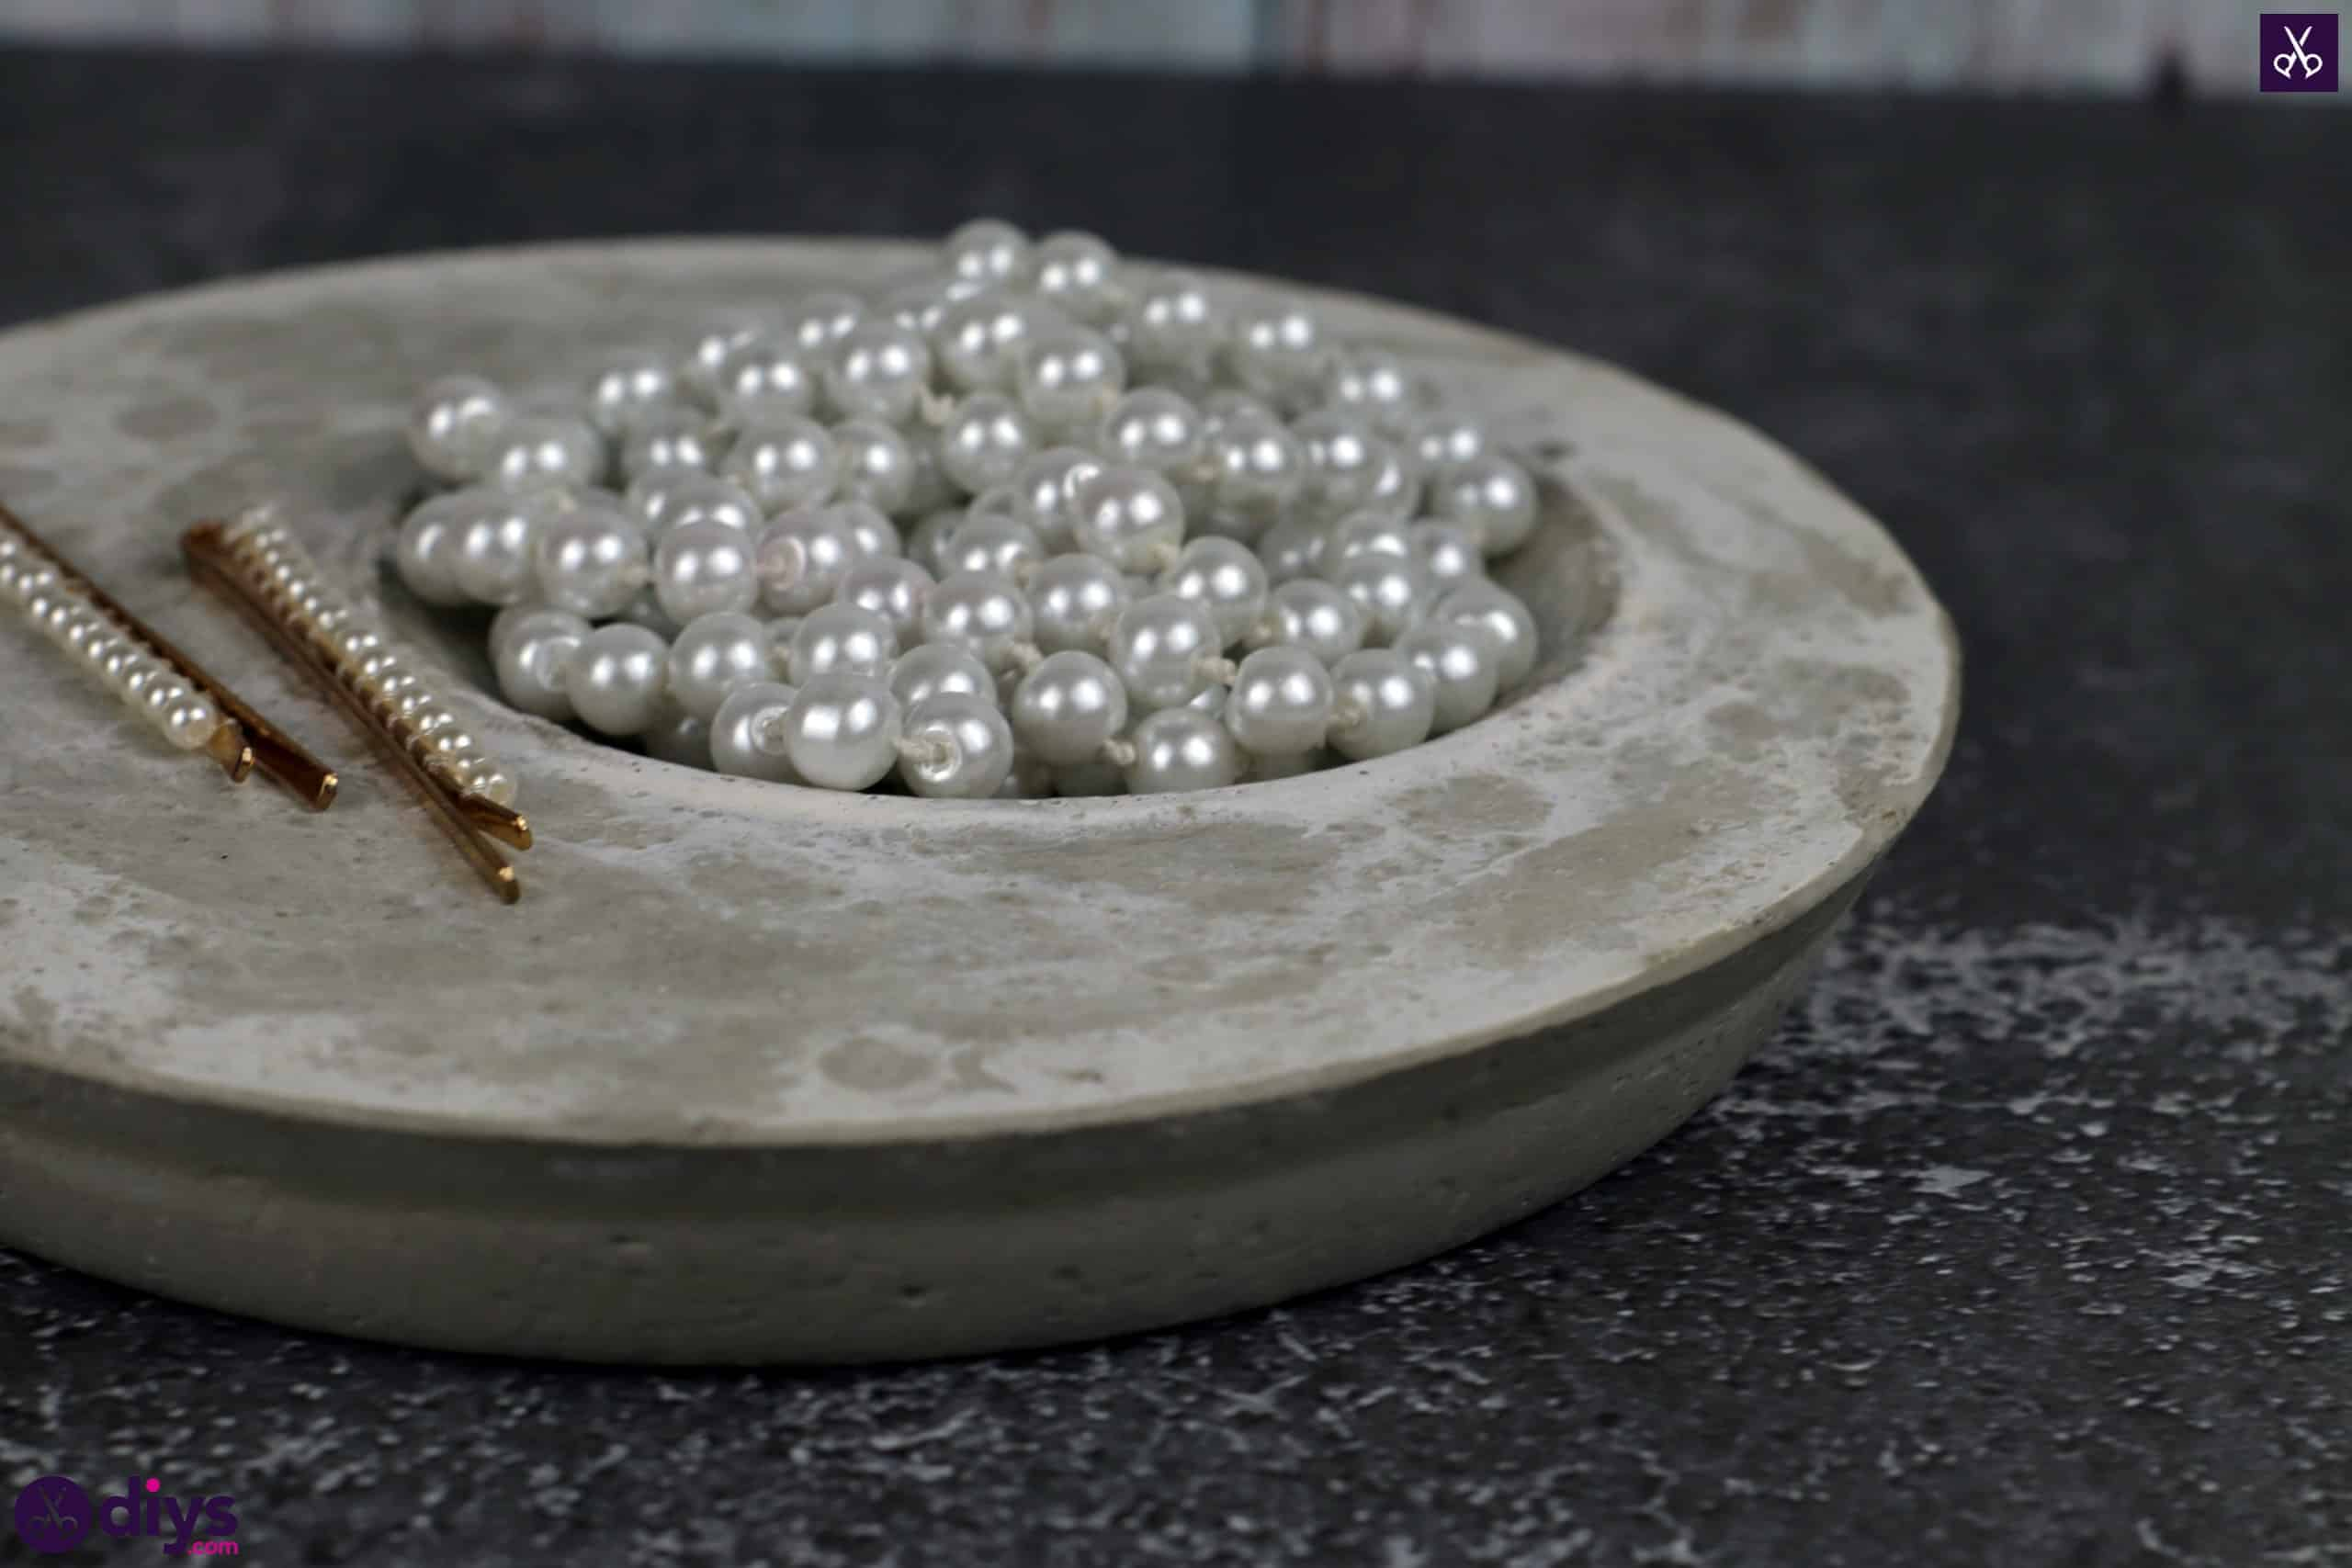 Diy concrete jewelry holder dish storage